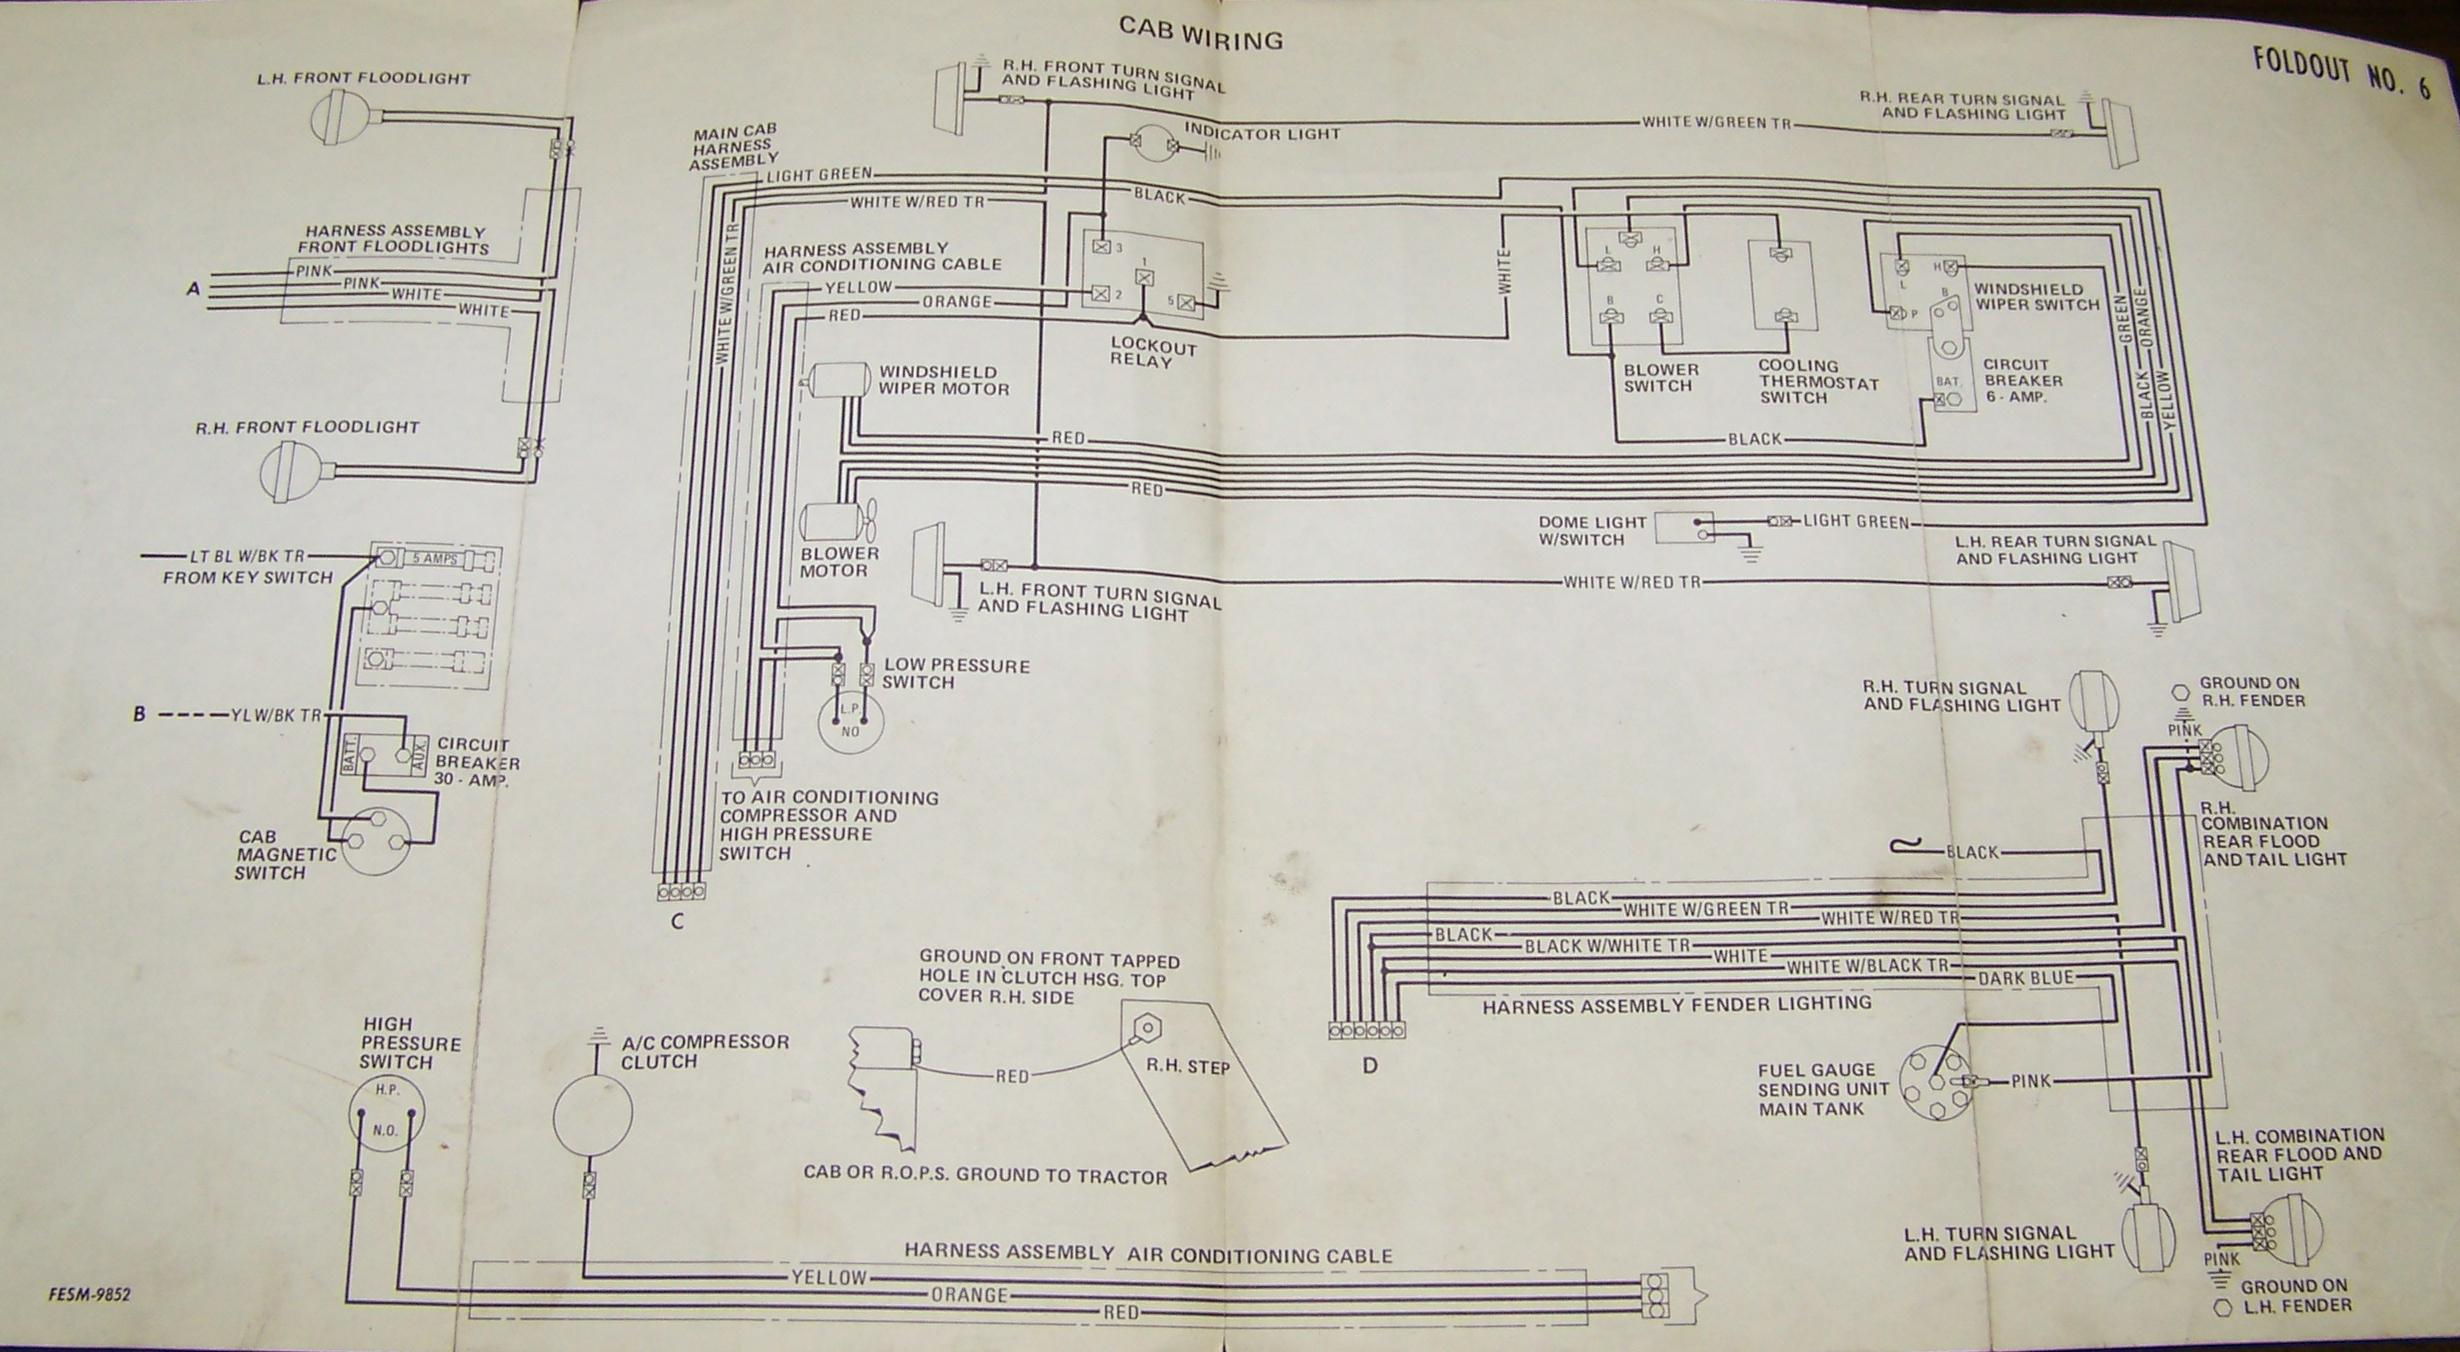 ih 706 wiring diagram 1965 schematics wiring diagrams u2022 rh seniorlivinguniversity co Farmall 300 Wiring Diagram Wiring Harness Diagram